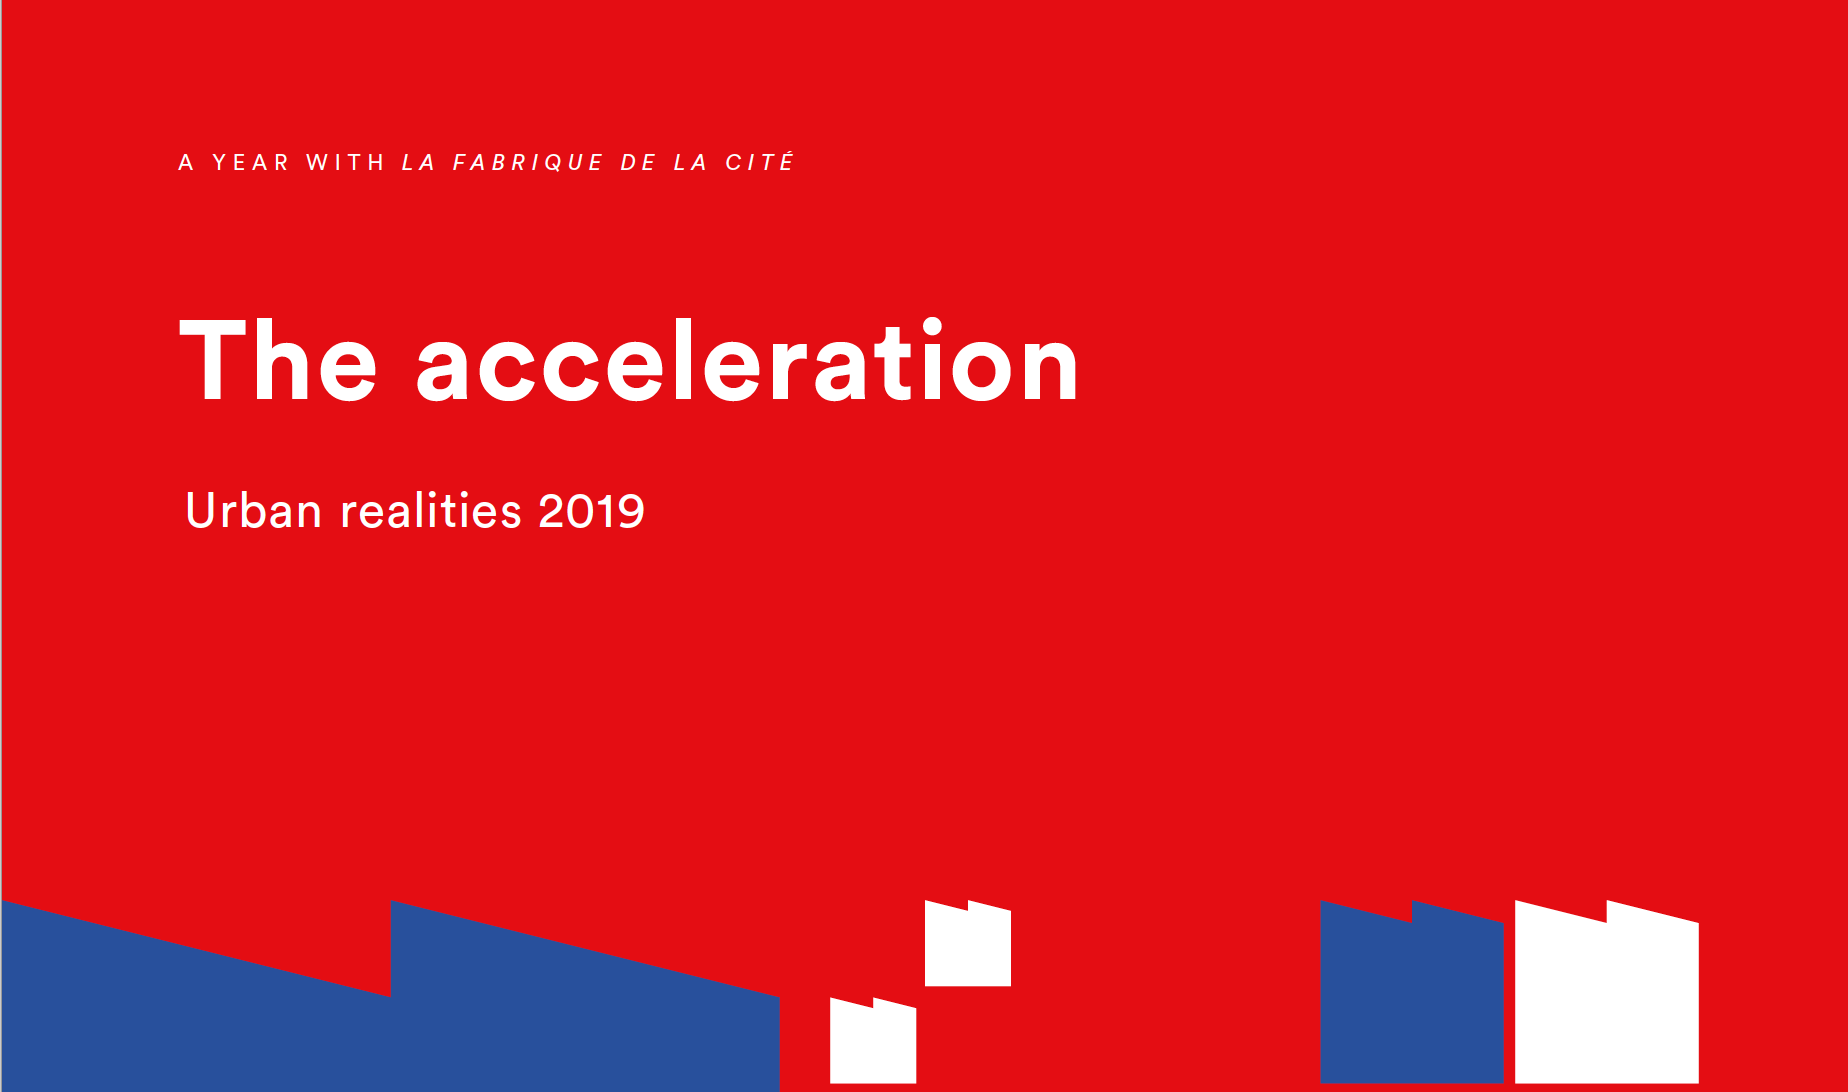 The acceleration, urban realities 2019